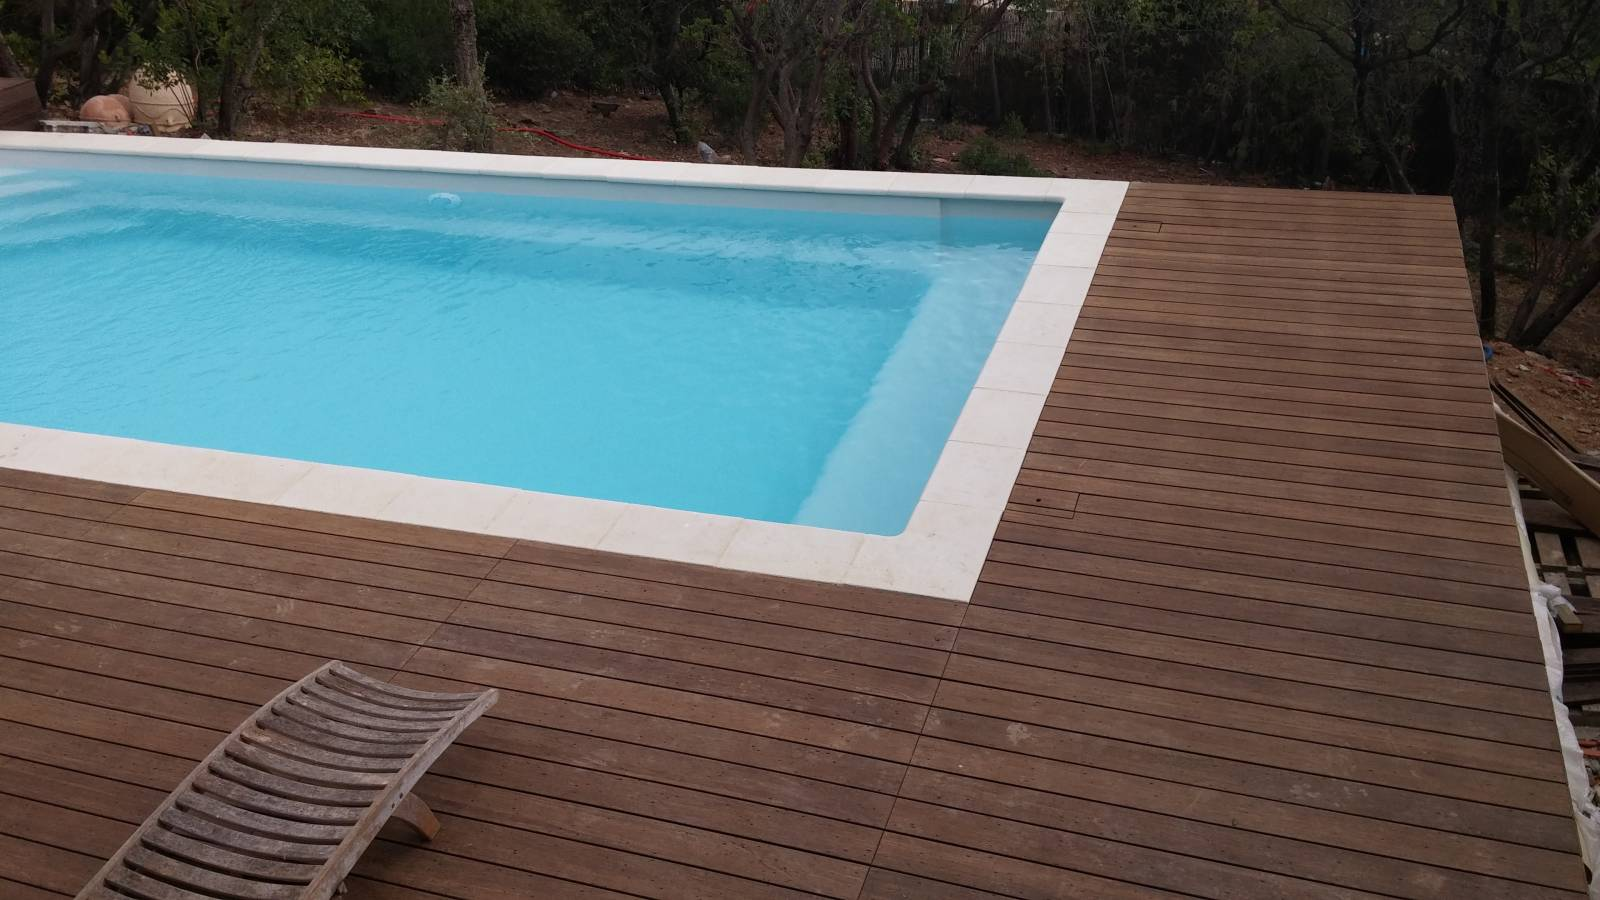 R alisation cavalaire 83240 piscine coque polyster for Piscine coque polyester grise